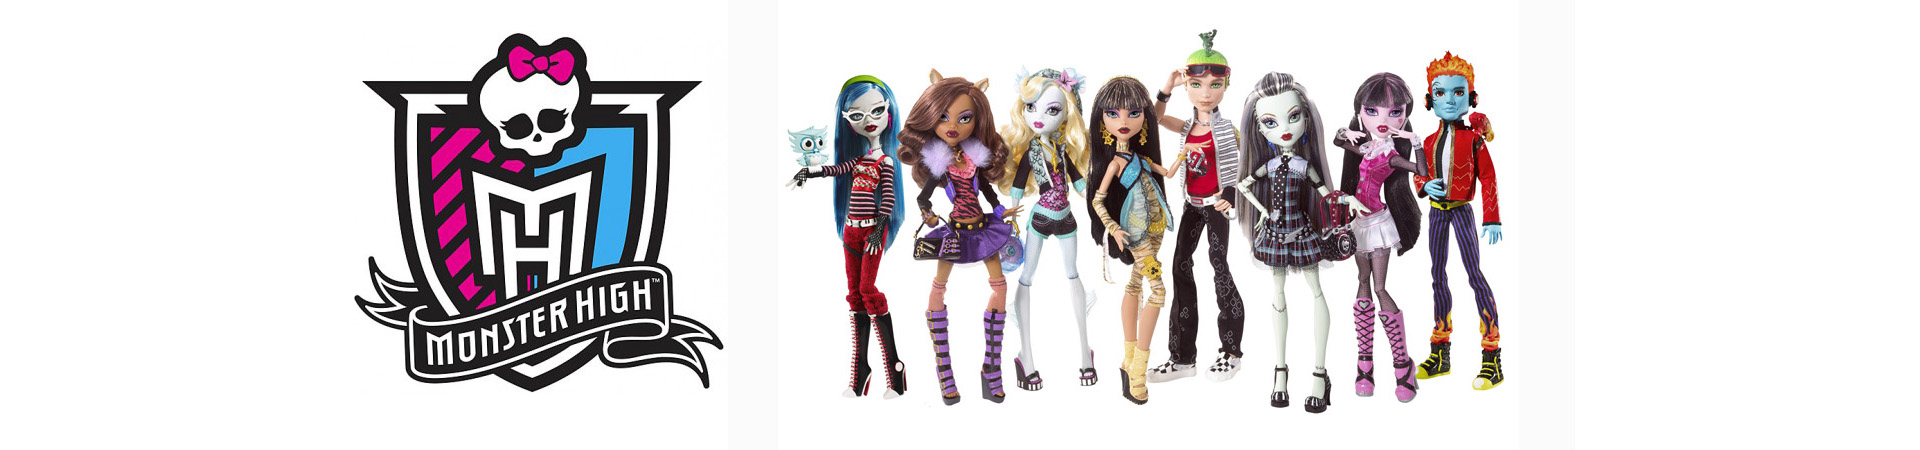 monster_high_sl1